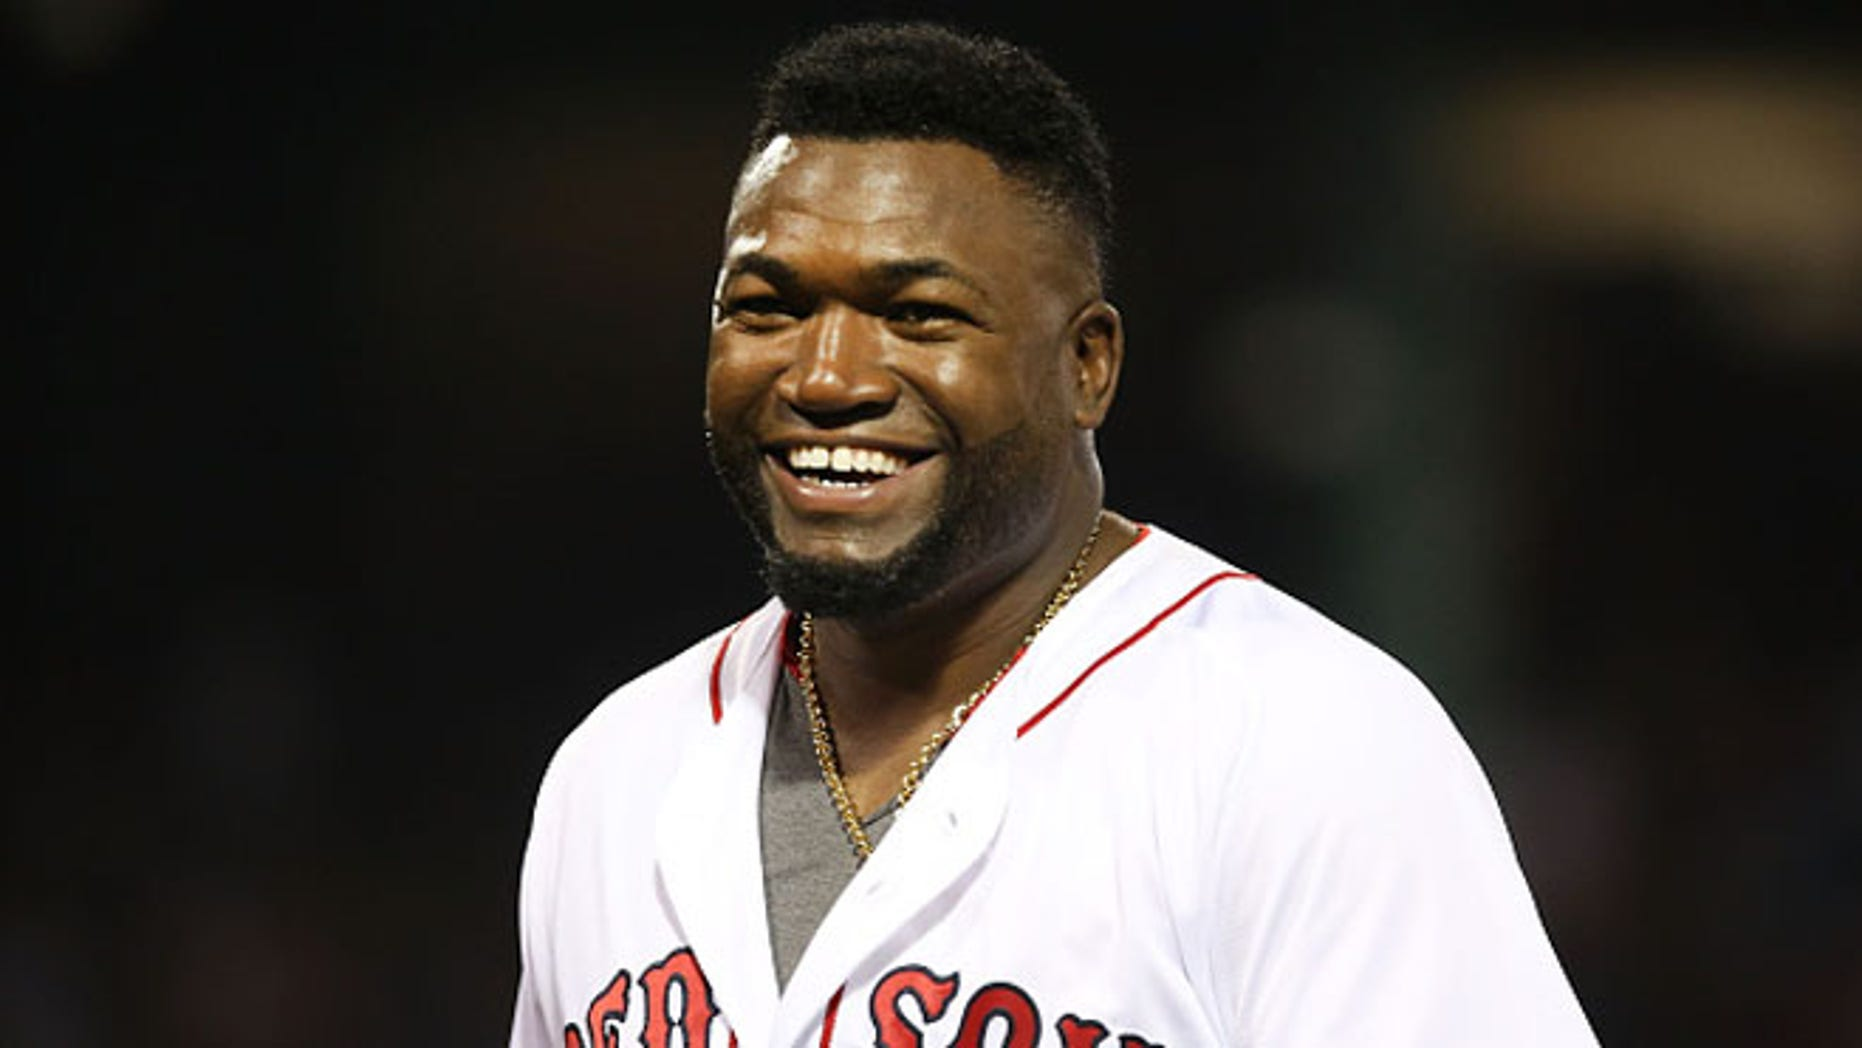 David Ortiz #34 of the Boston Red Sox smiles in the fifth inning during the game against the Texas Rangers at Fenway Park on July 6, 2016 in Boston, Massachusetts.